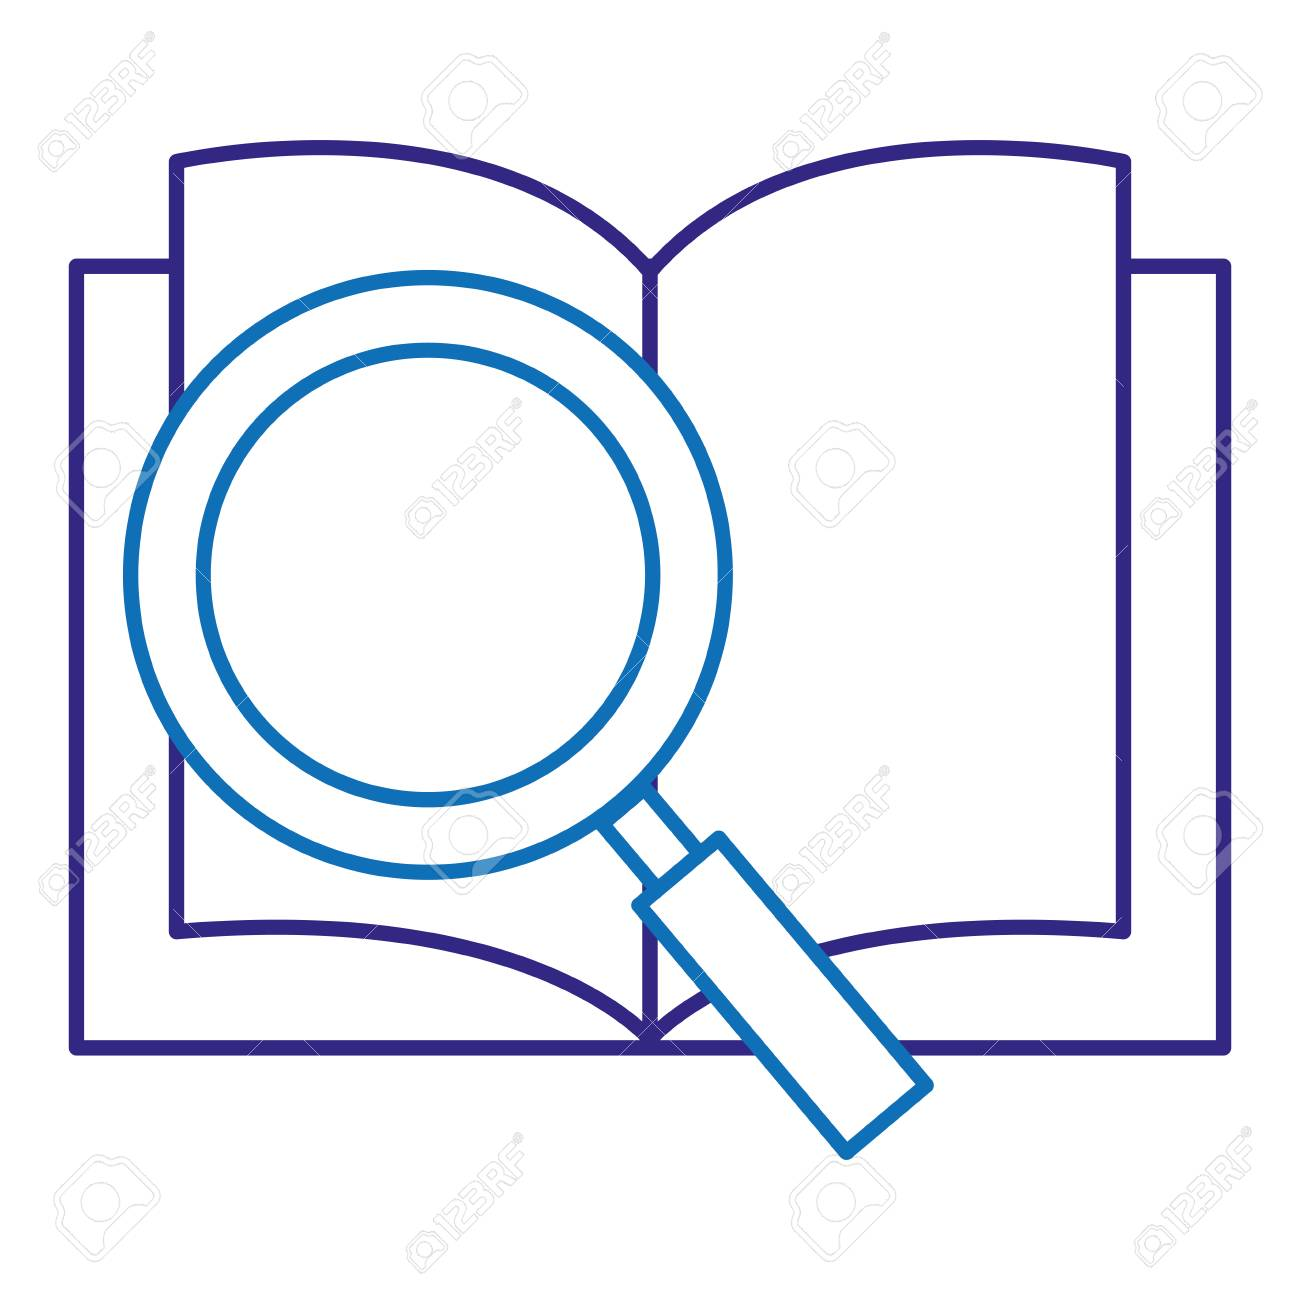 text book school with magnifying glass vector illustration design - 88232735